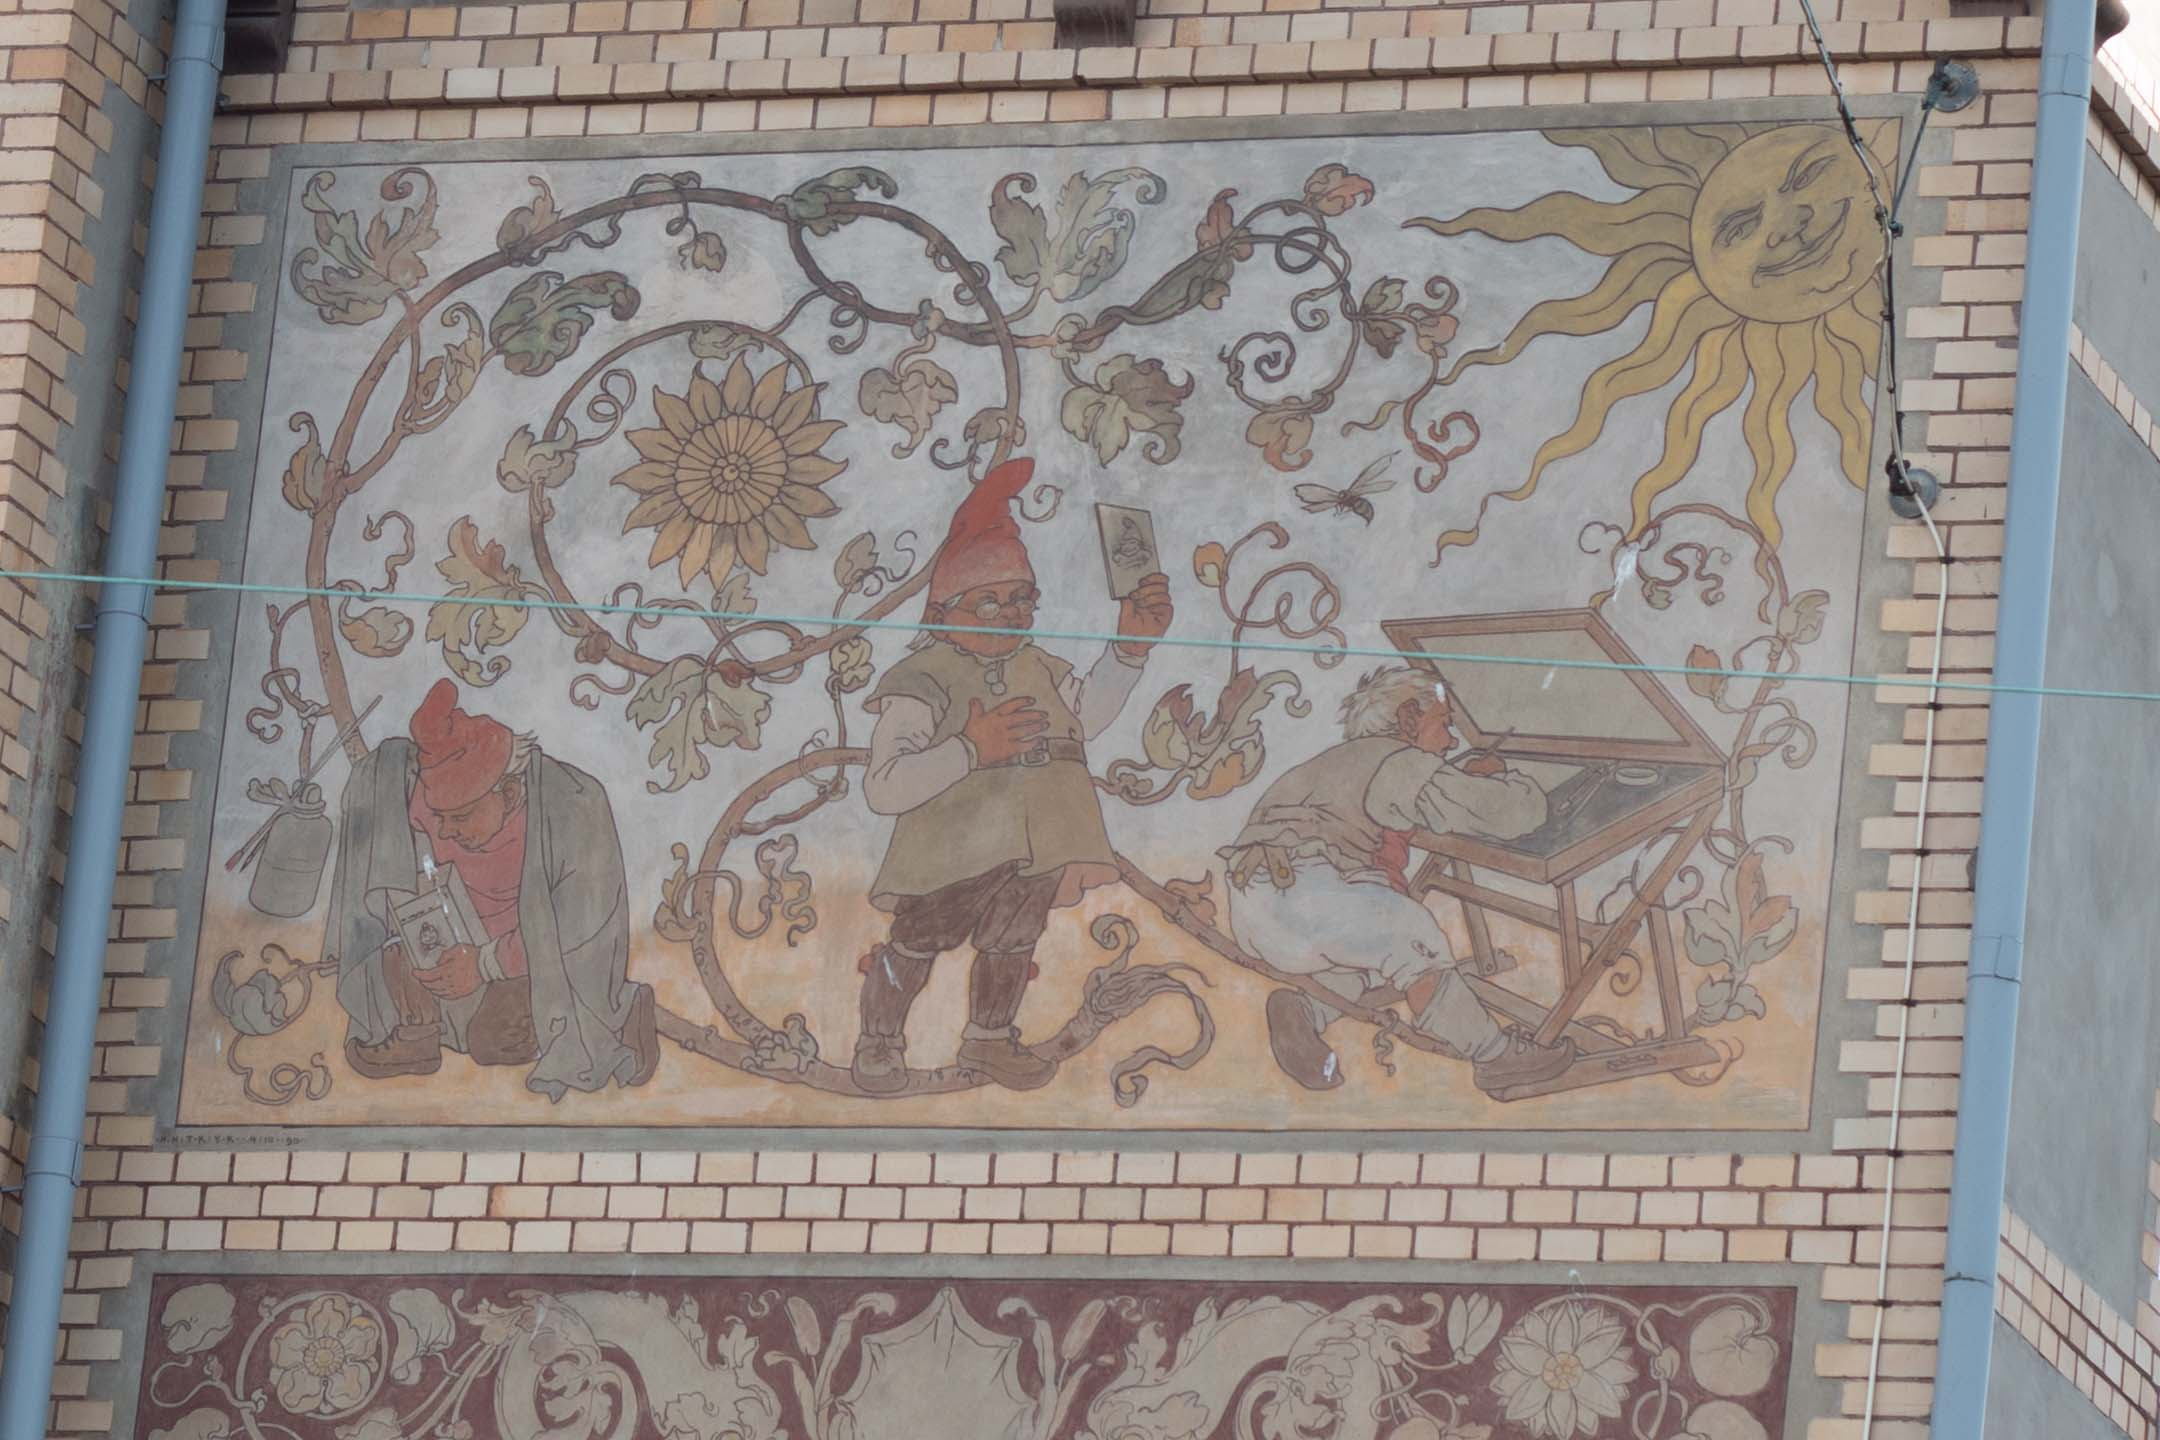 Beautiful mural on the side of a building in the city center of Gothenburg